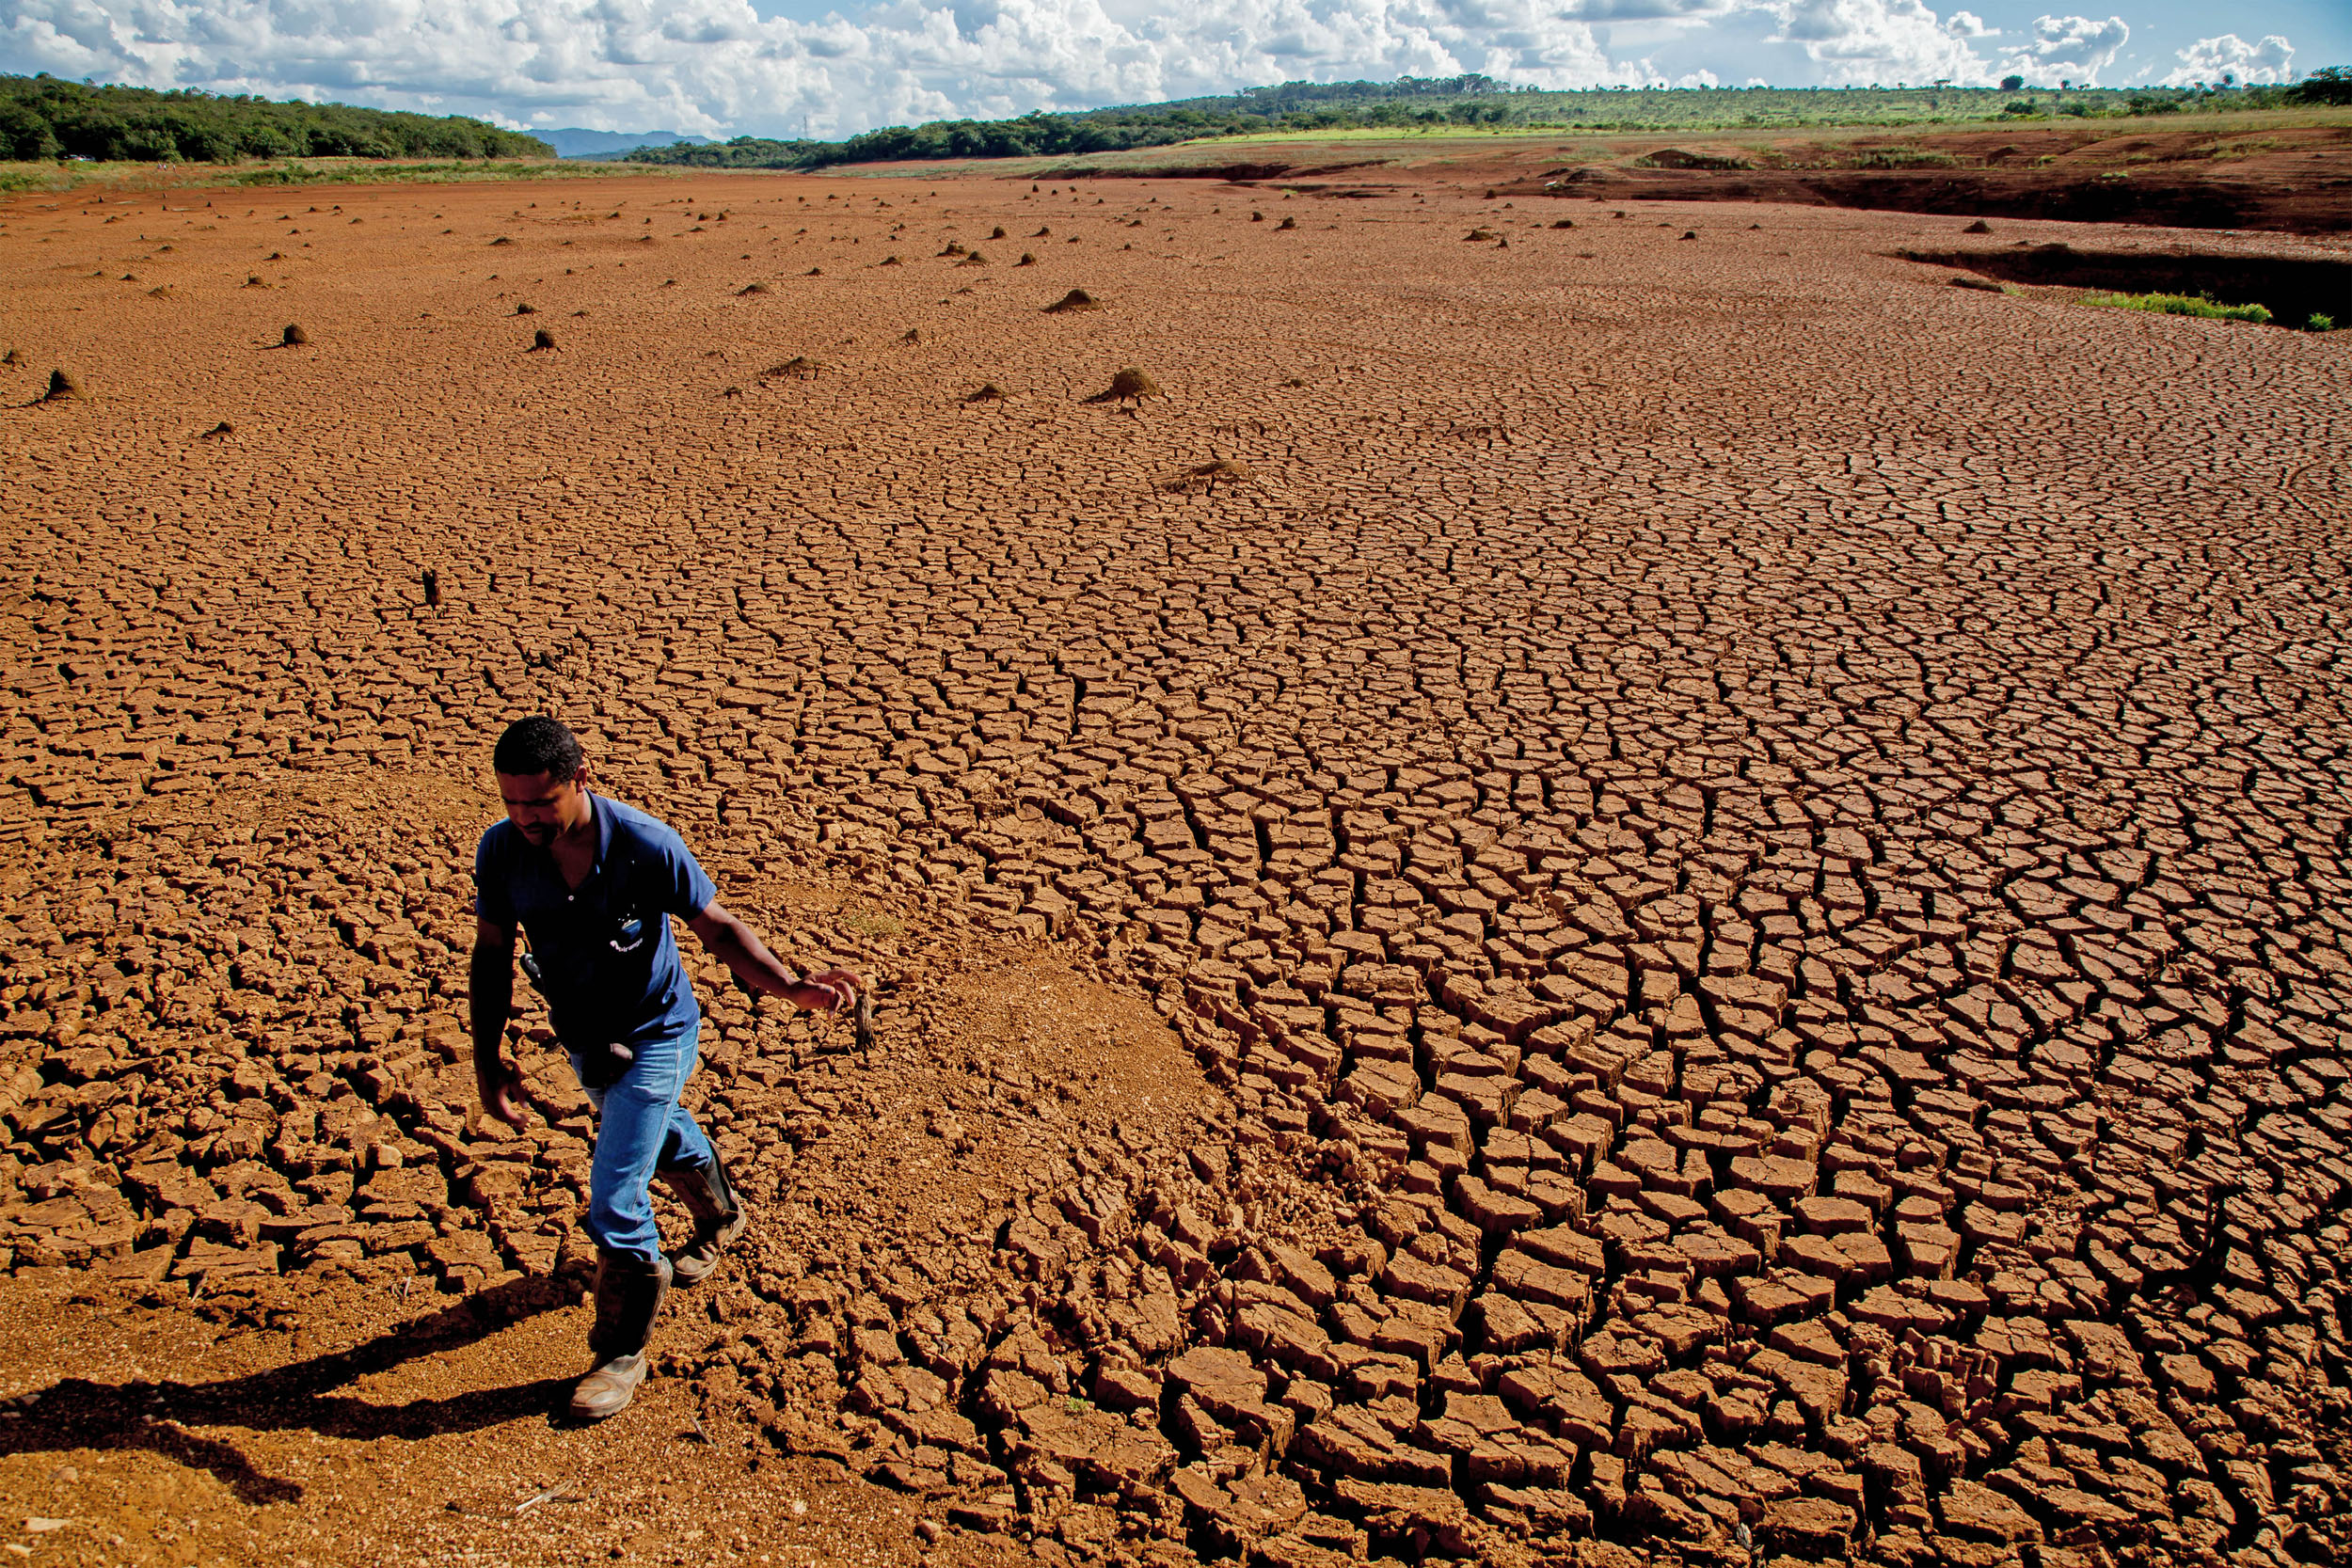 Greenpeace carries out an expedition to the main surface water sources in the south east region of Brazil, where millions of people are threatened by water shortage since 2014.  It's way after due time our governments understand that with no forest, there's no water –  Cristiane Mazzetti, Greenpeace's Forest campaigner.